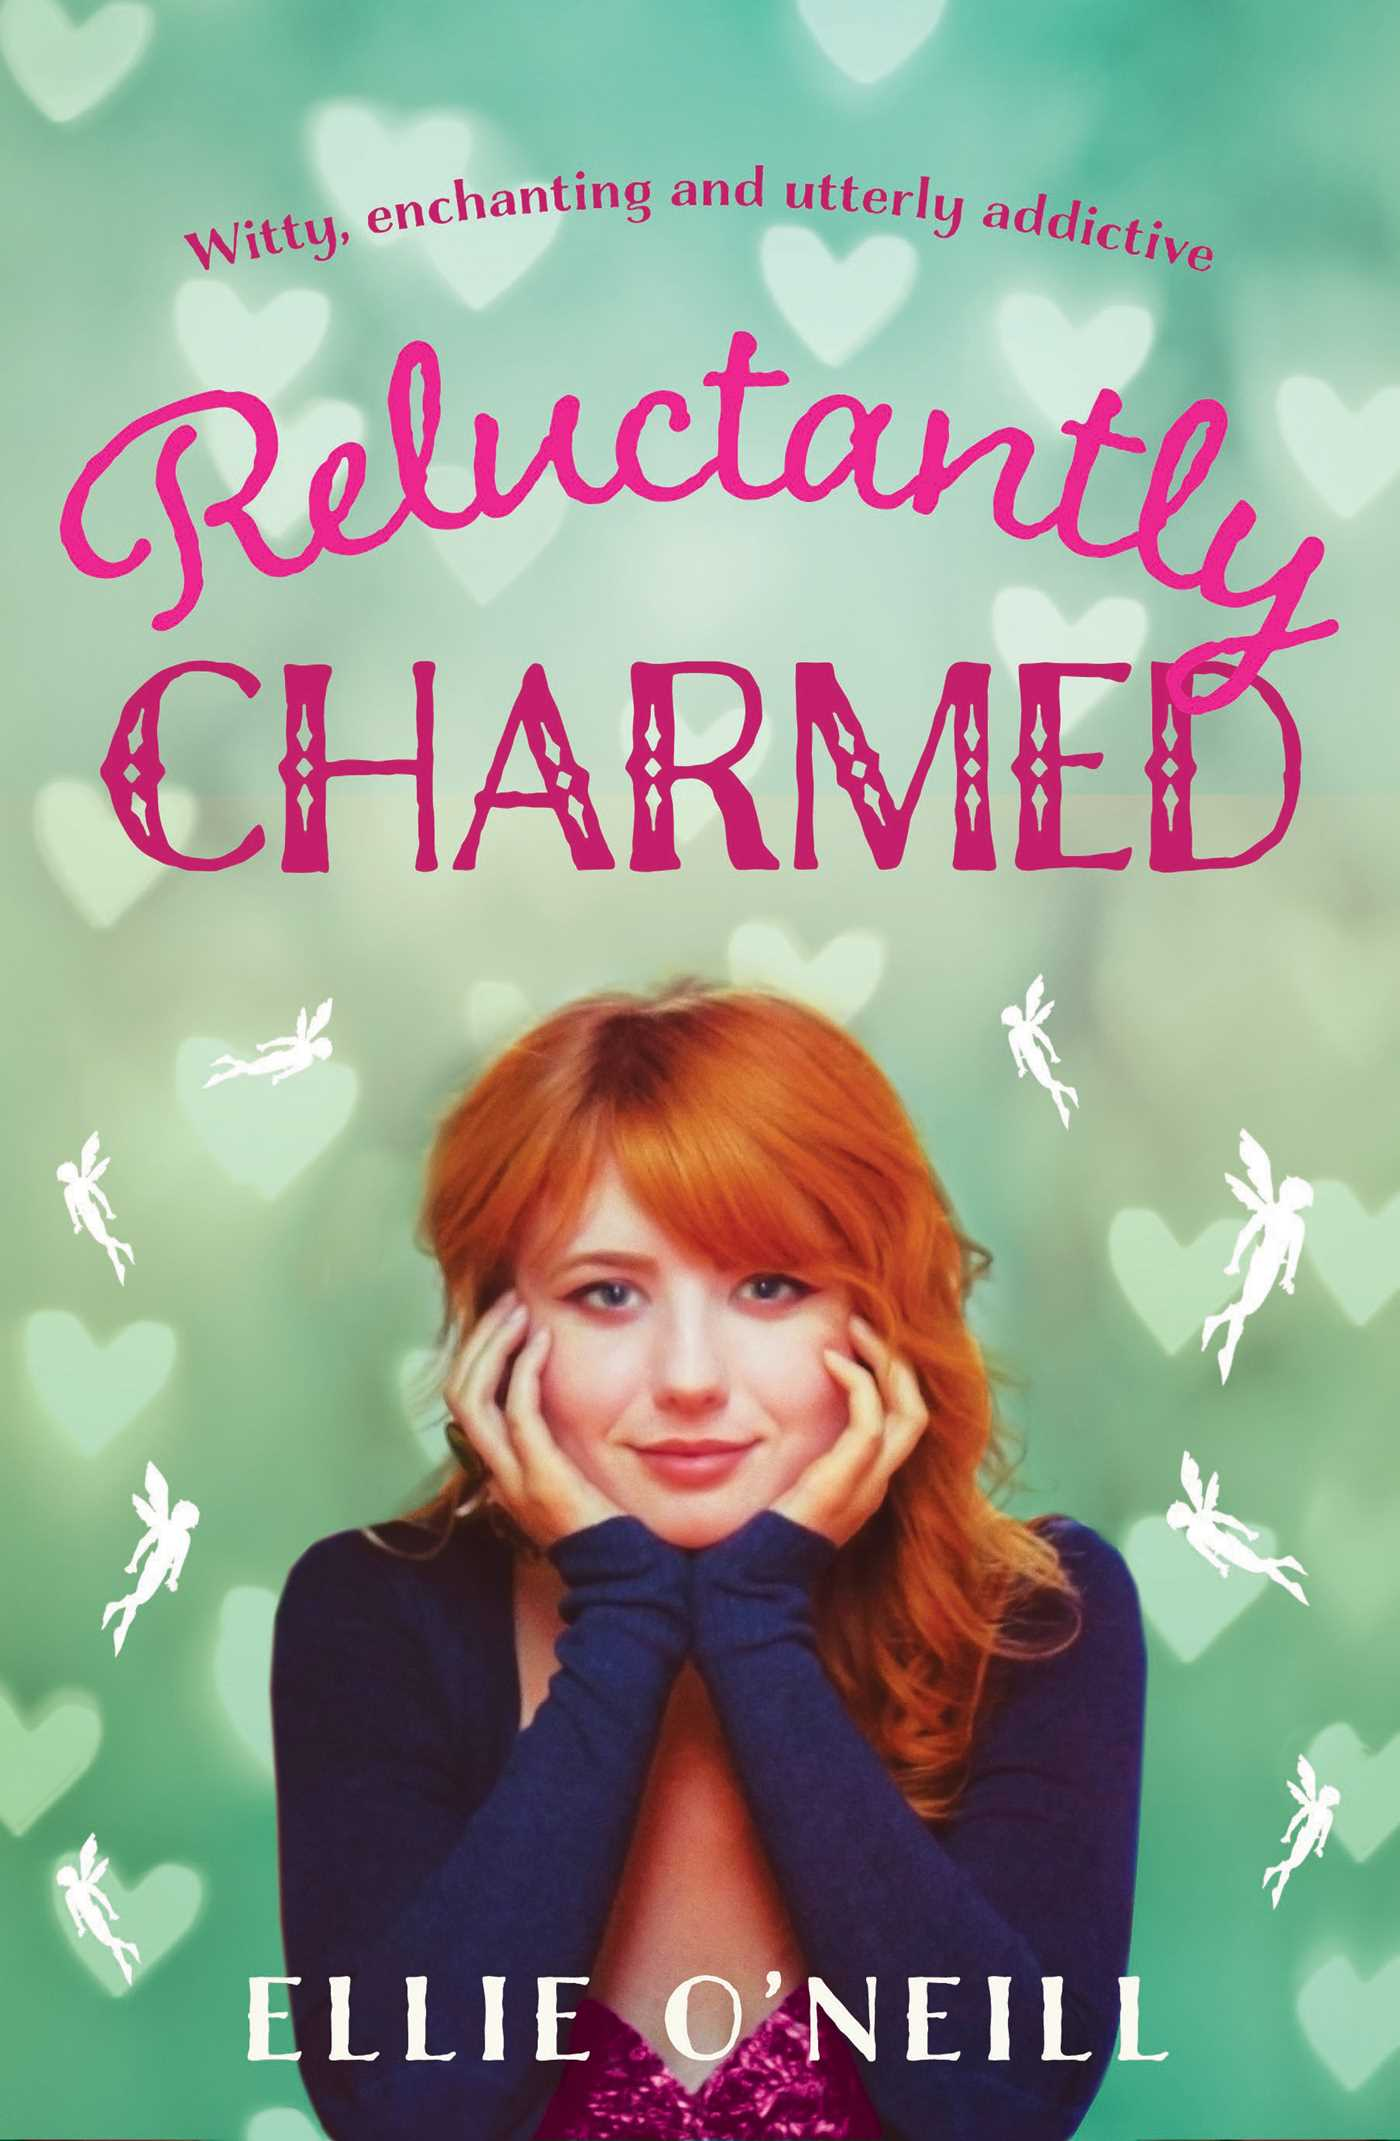 Reluctantly charmed 9781922052773 hr